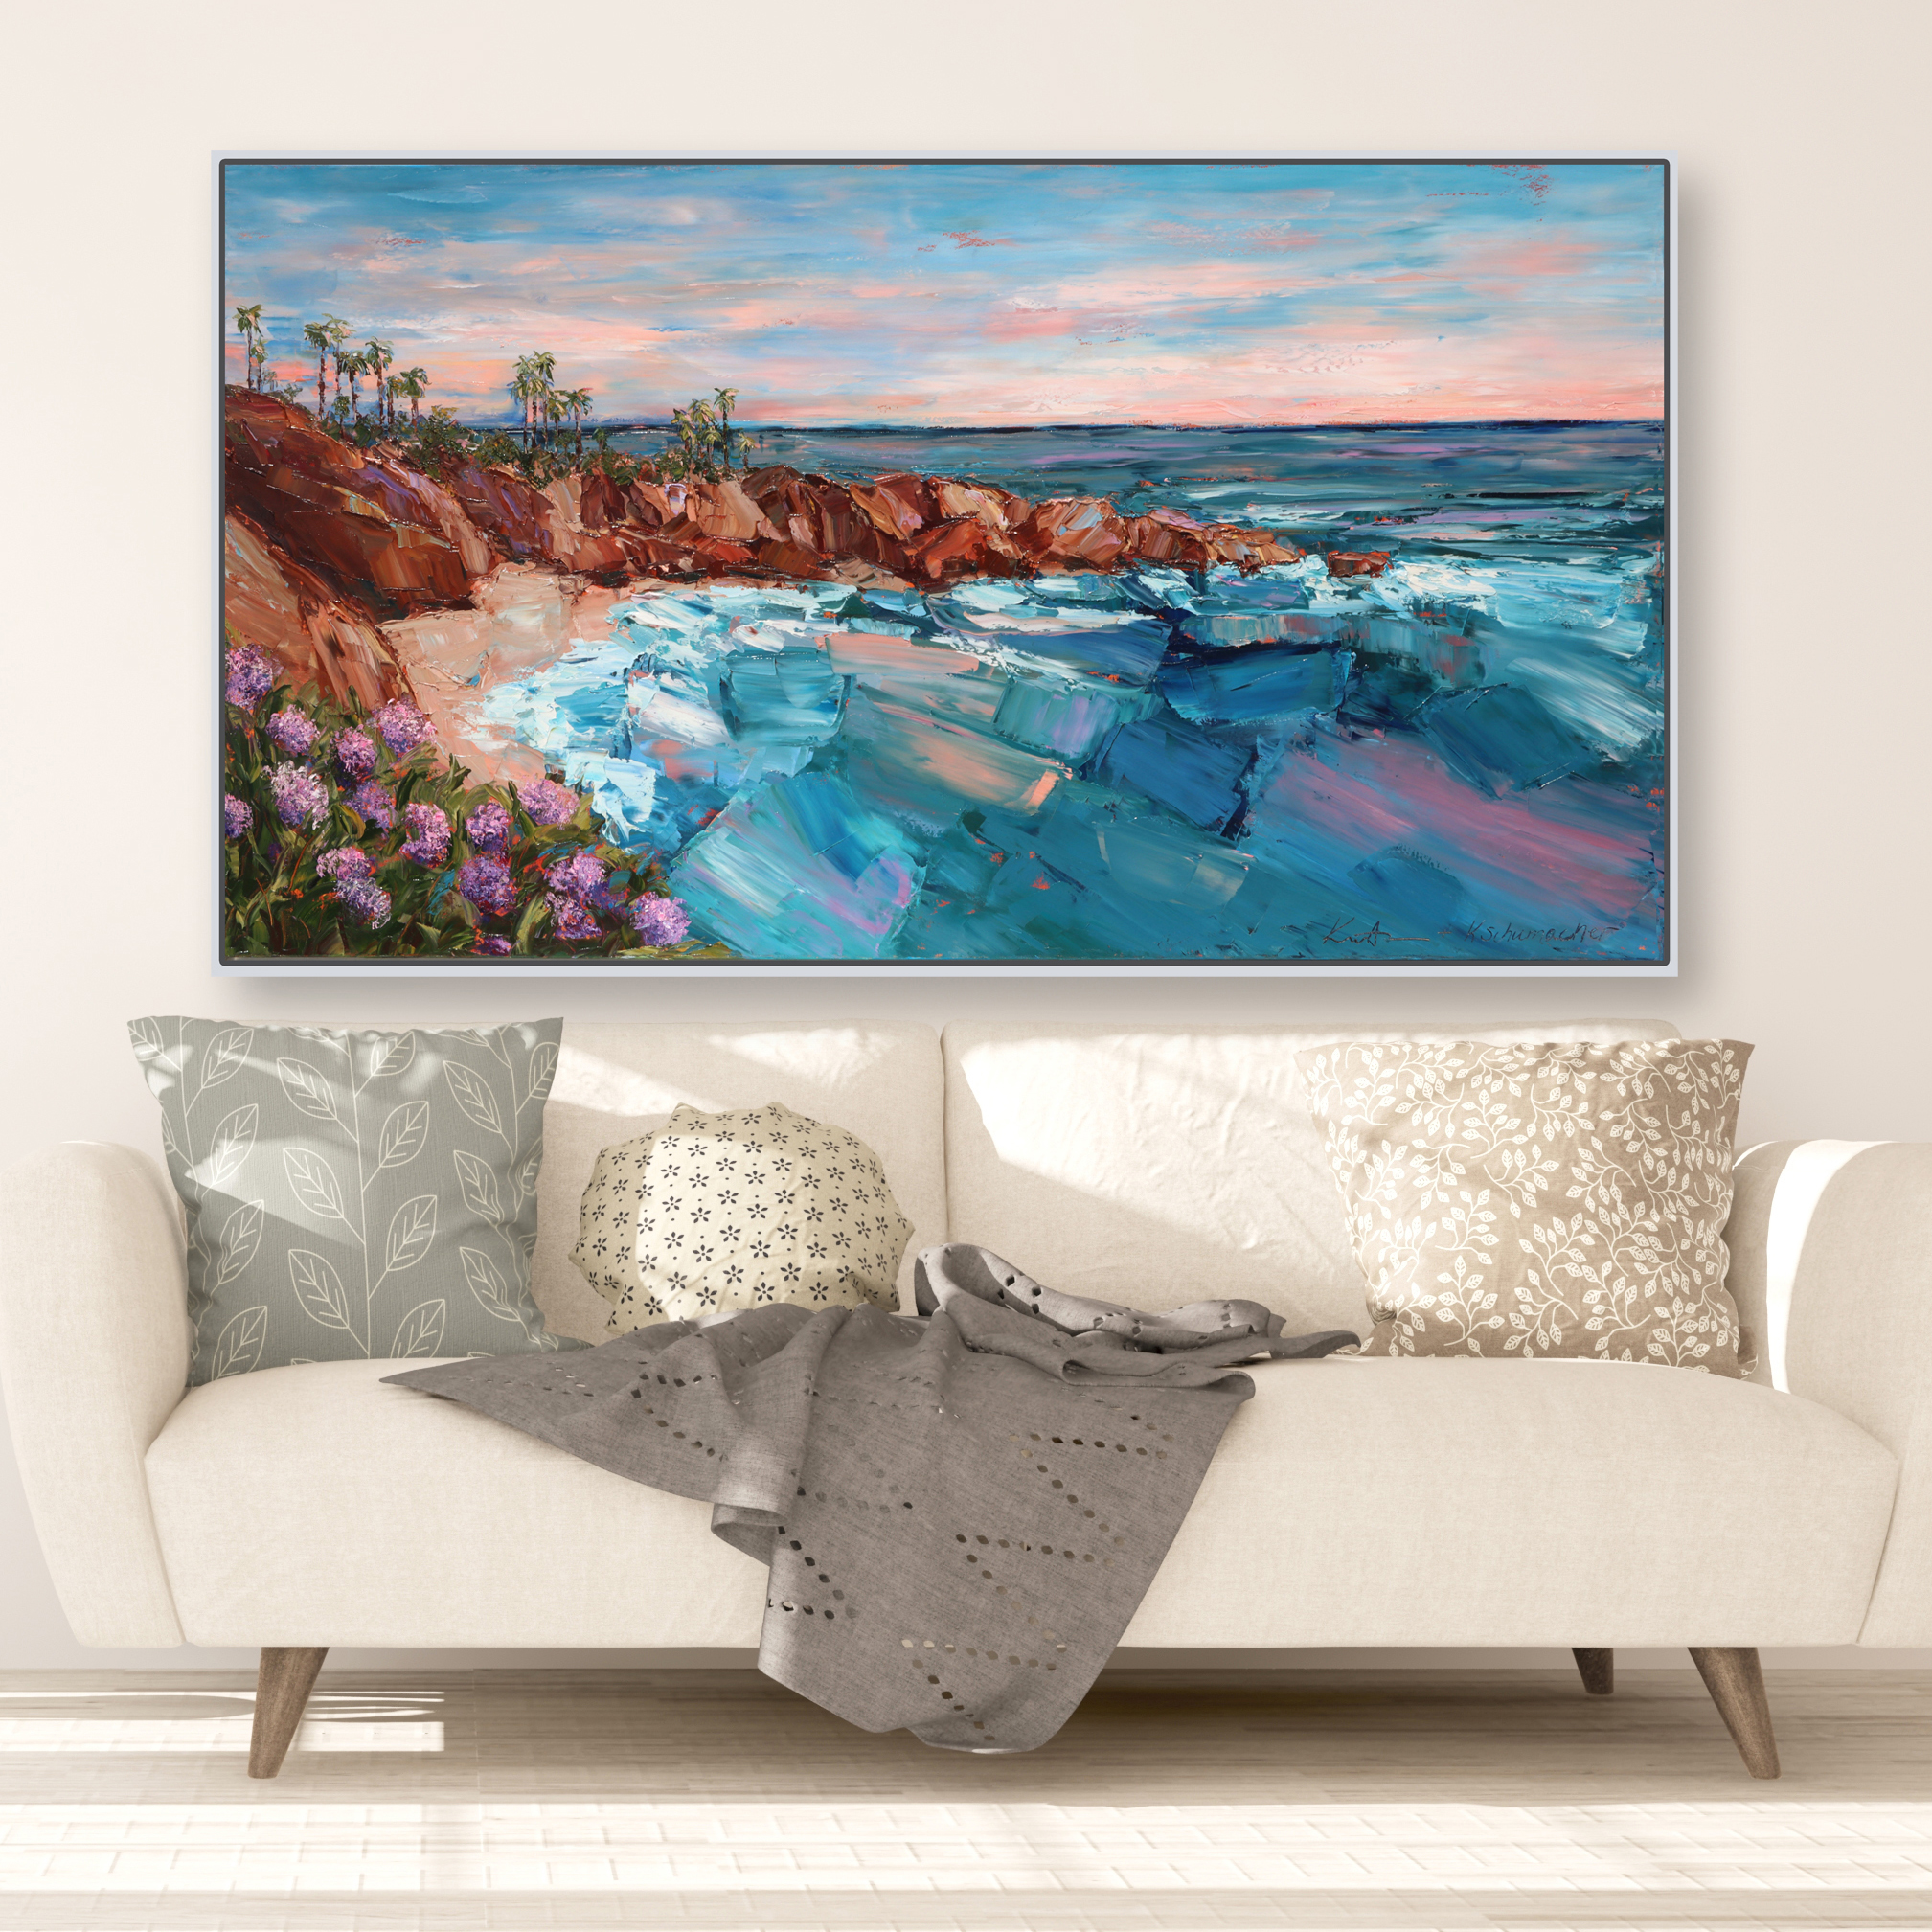 Coastal California 42×74 framed and hung over couch for web